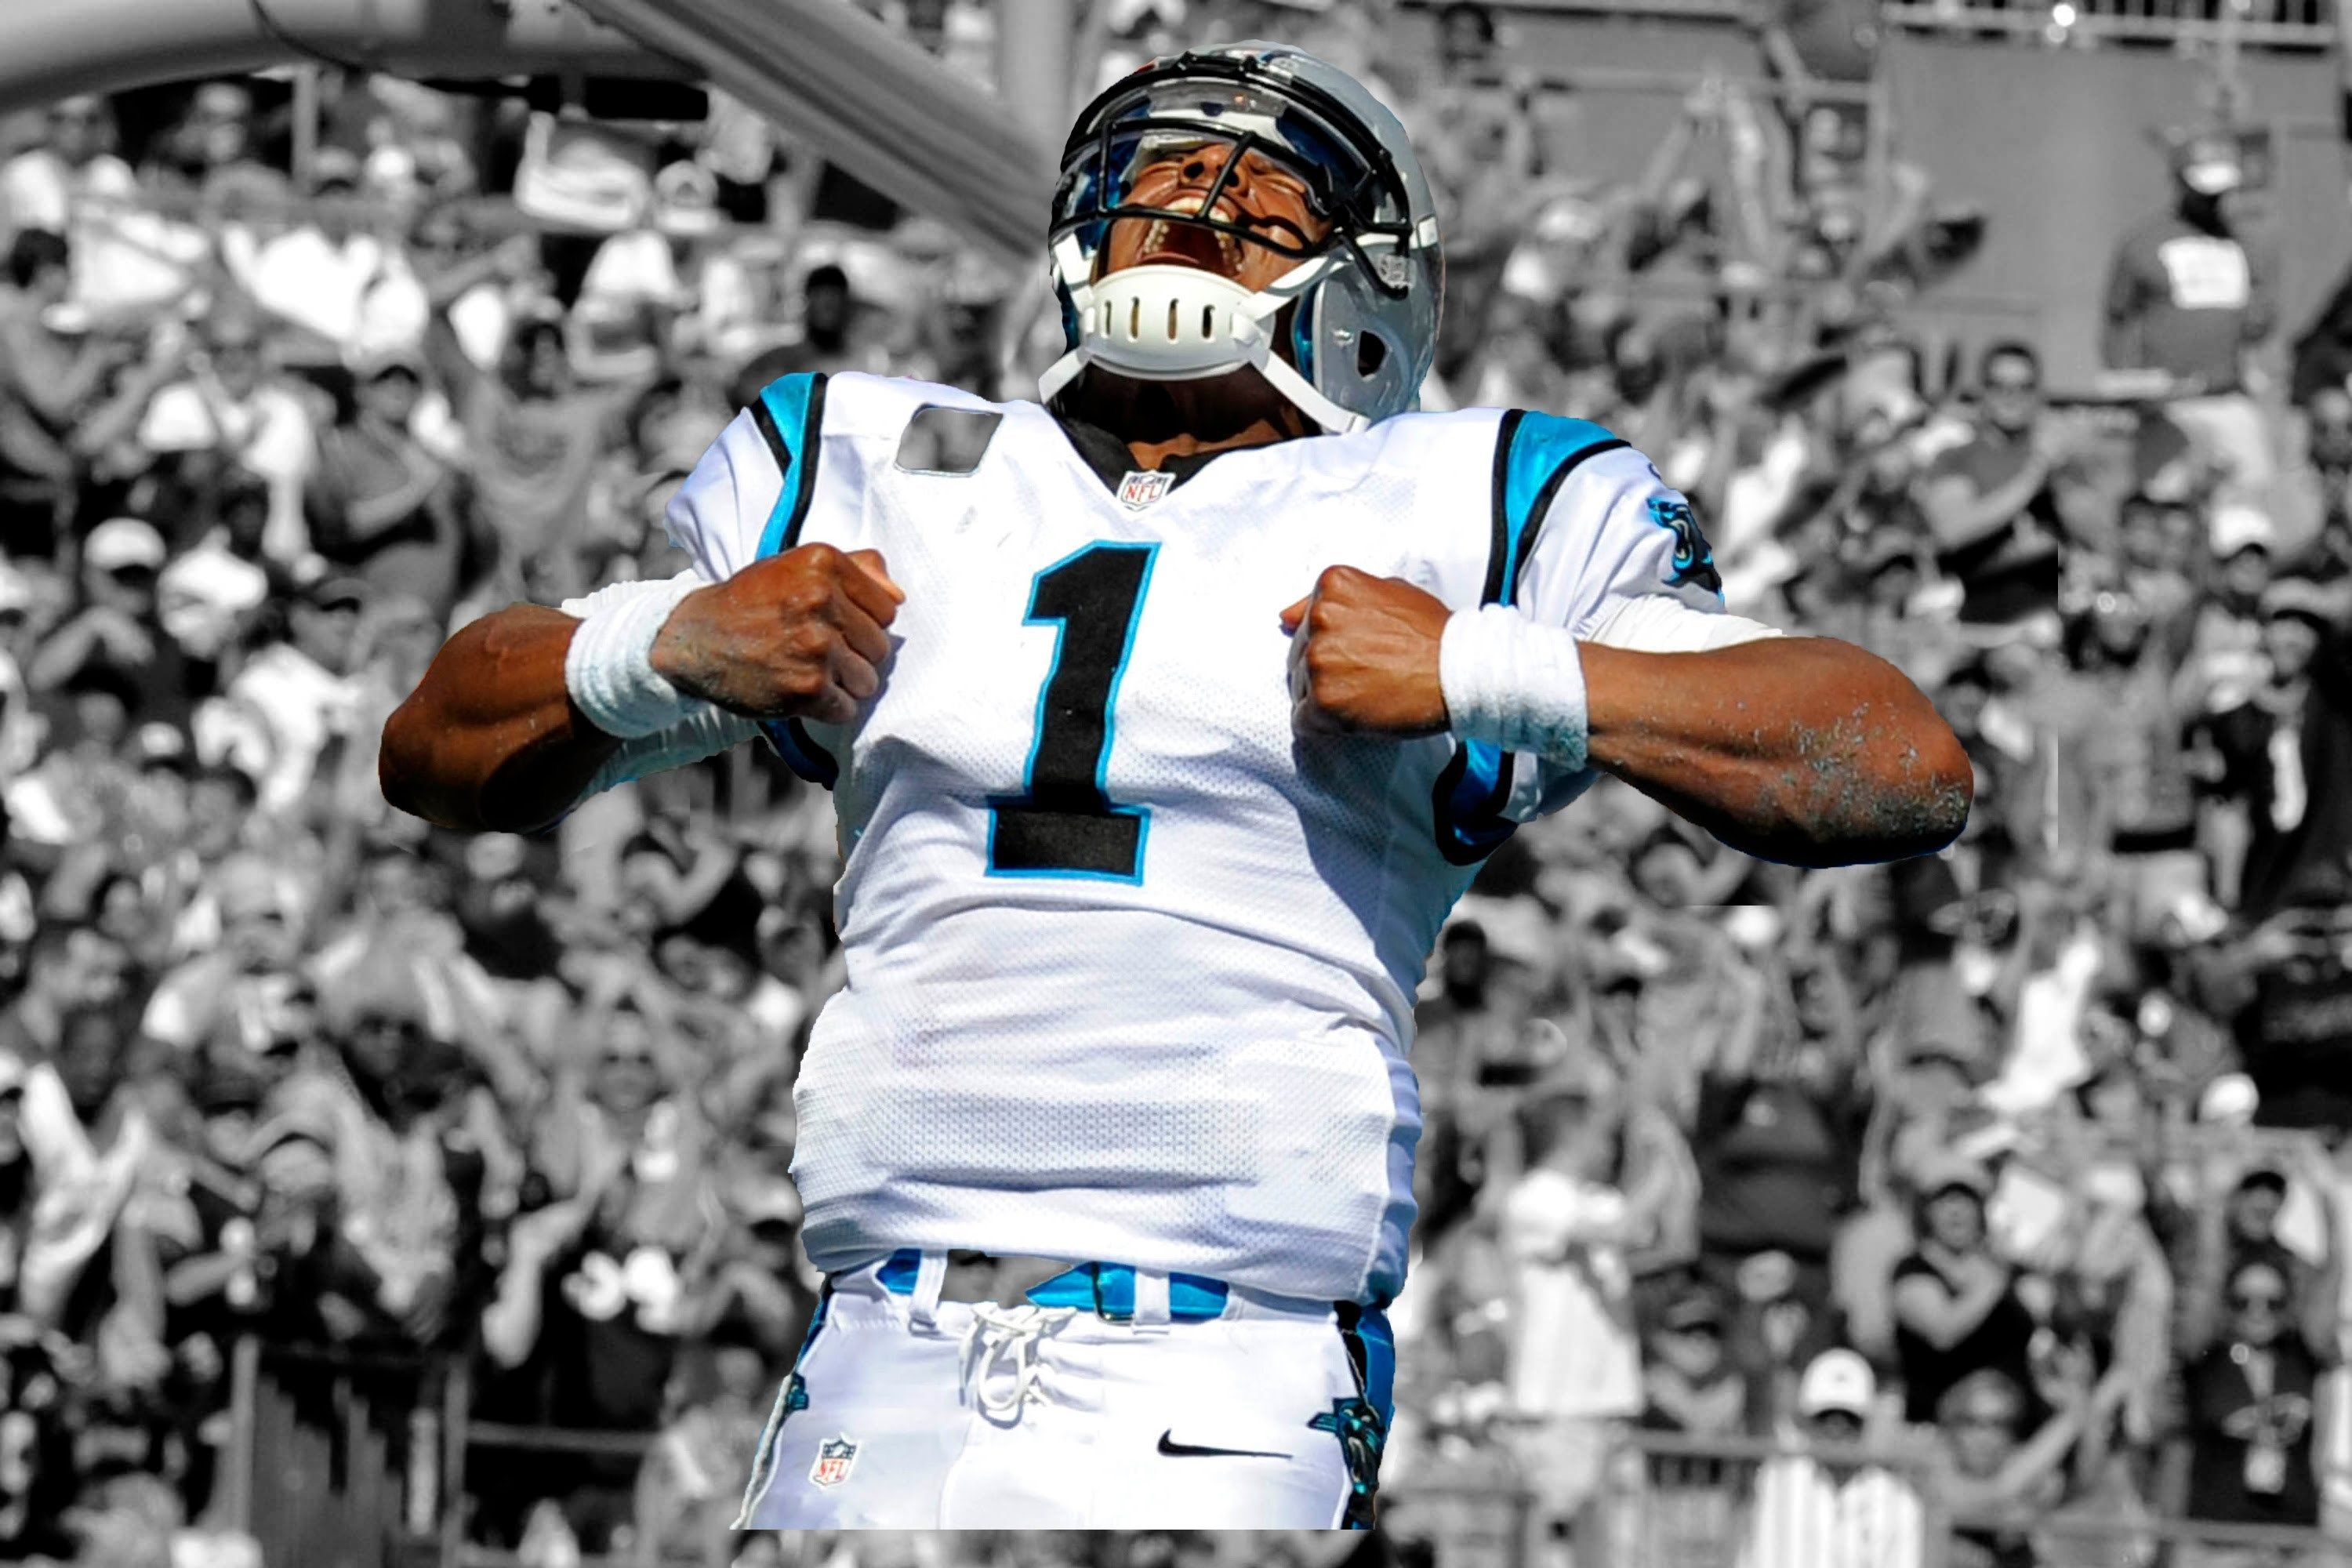 Cam Newton Hd Wallpaper Cam Newton Wallpaper Cam Newton Cam